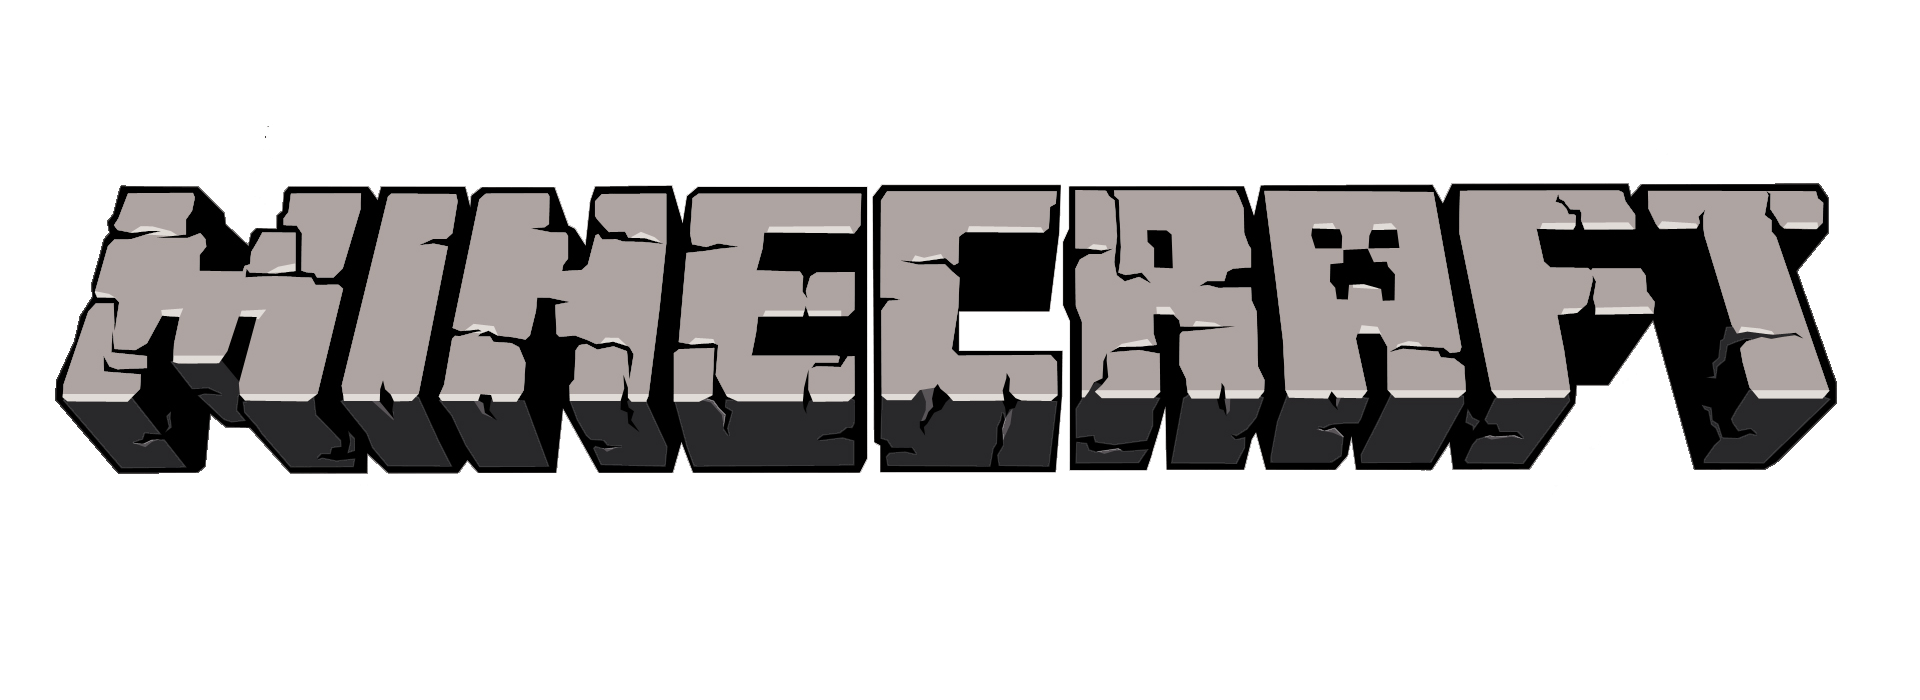 Minecraft text png. Image logo transparent background